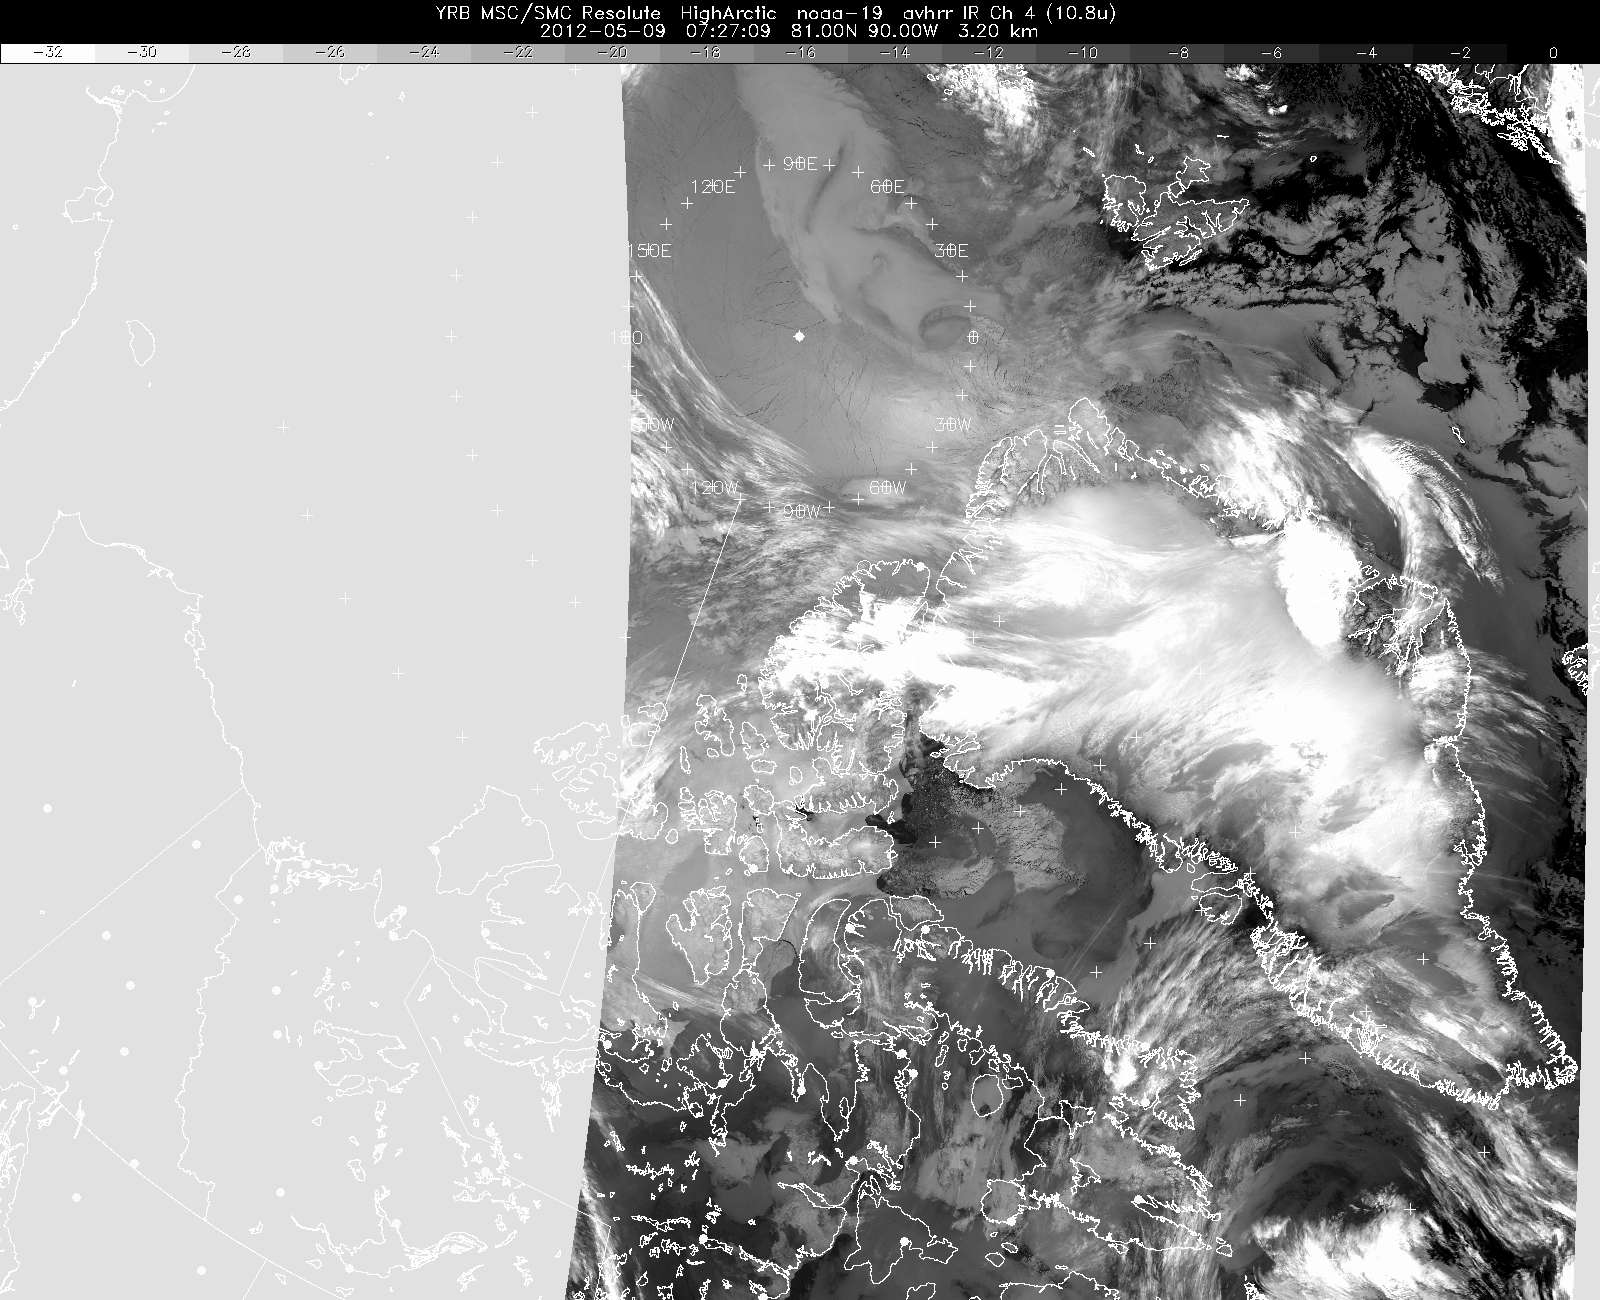 An early morning weather satellite image of Greenland and Arctic Canada, taken on 9 May 2012.